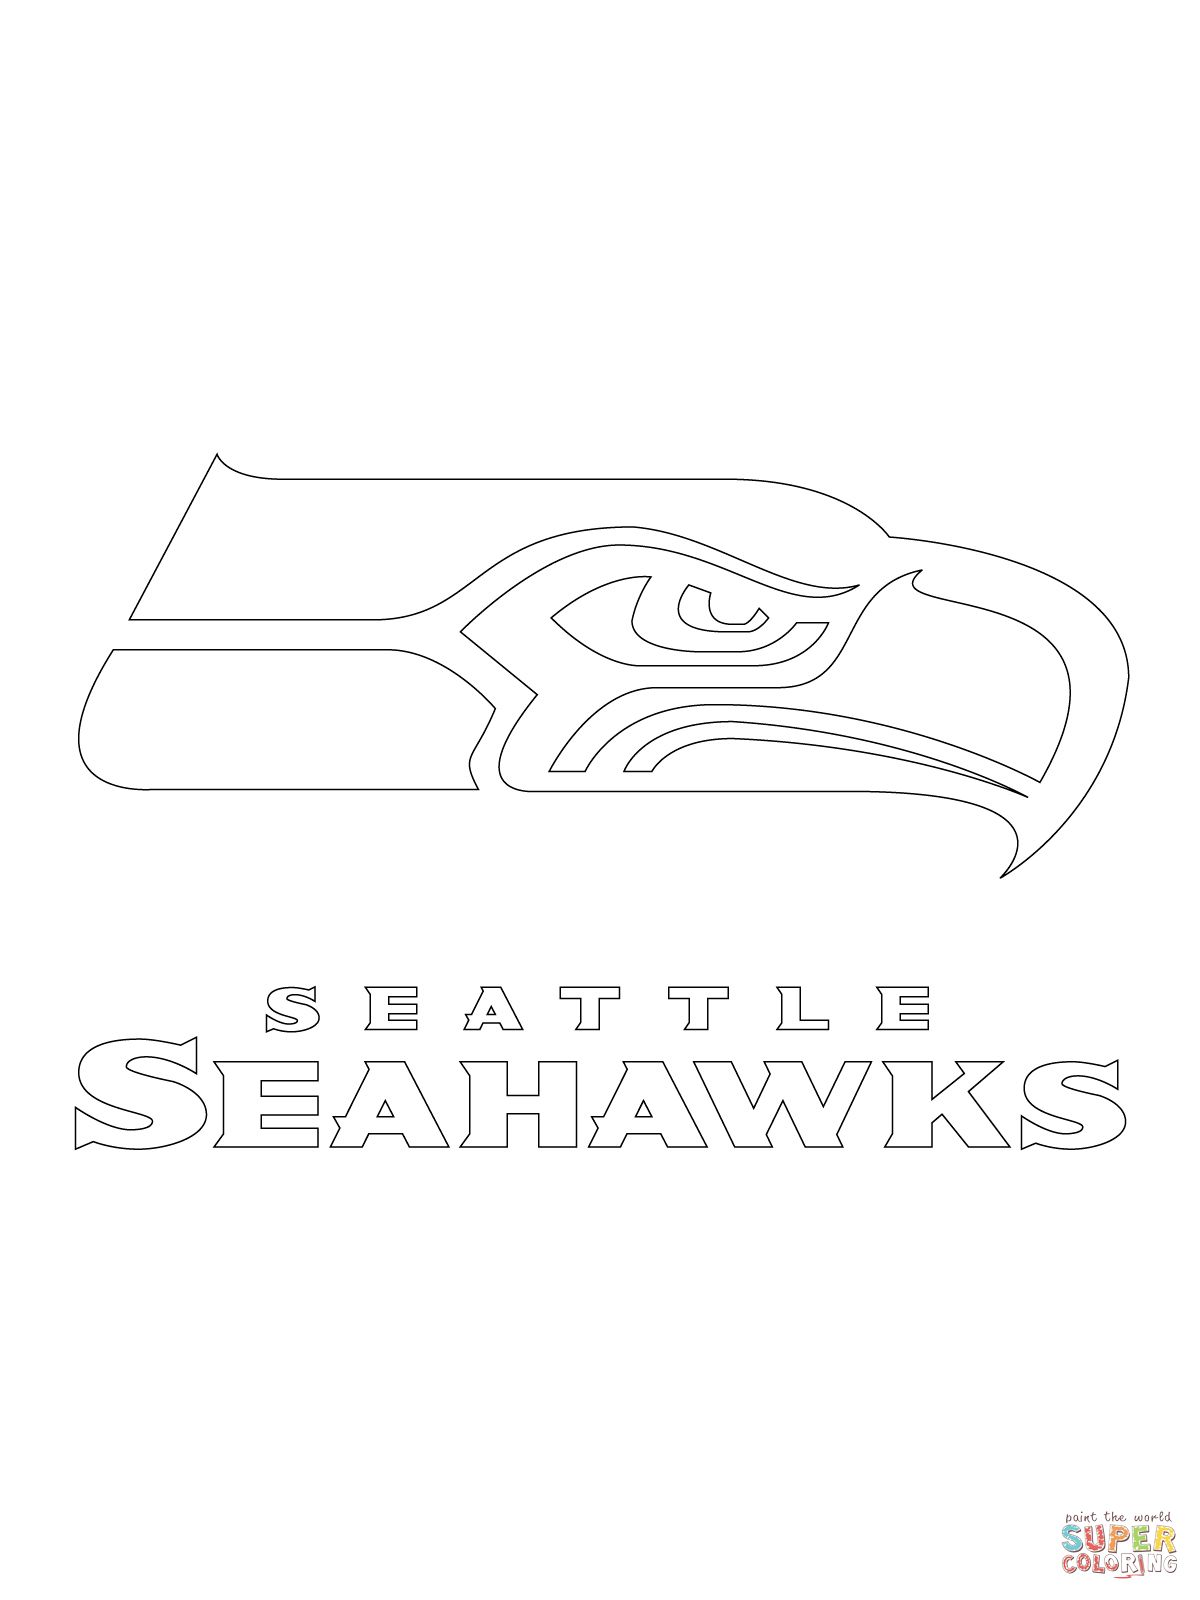 seahawks coloring pages Seattle Seahawks Logo Coloring page | SuperColoring.| Seahawks  seahawks coloring pages